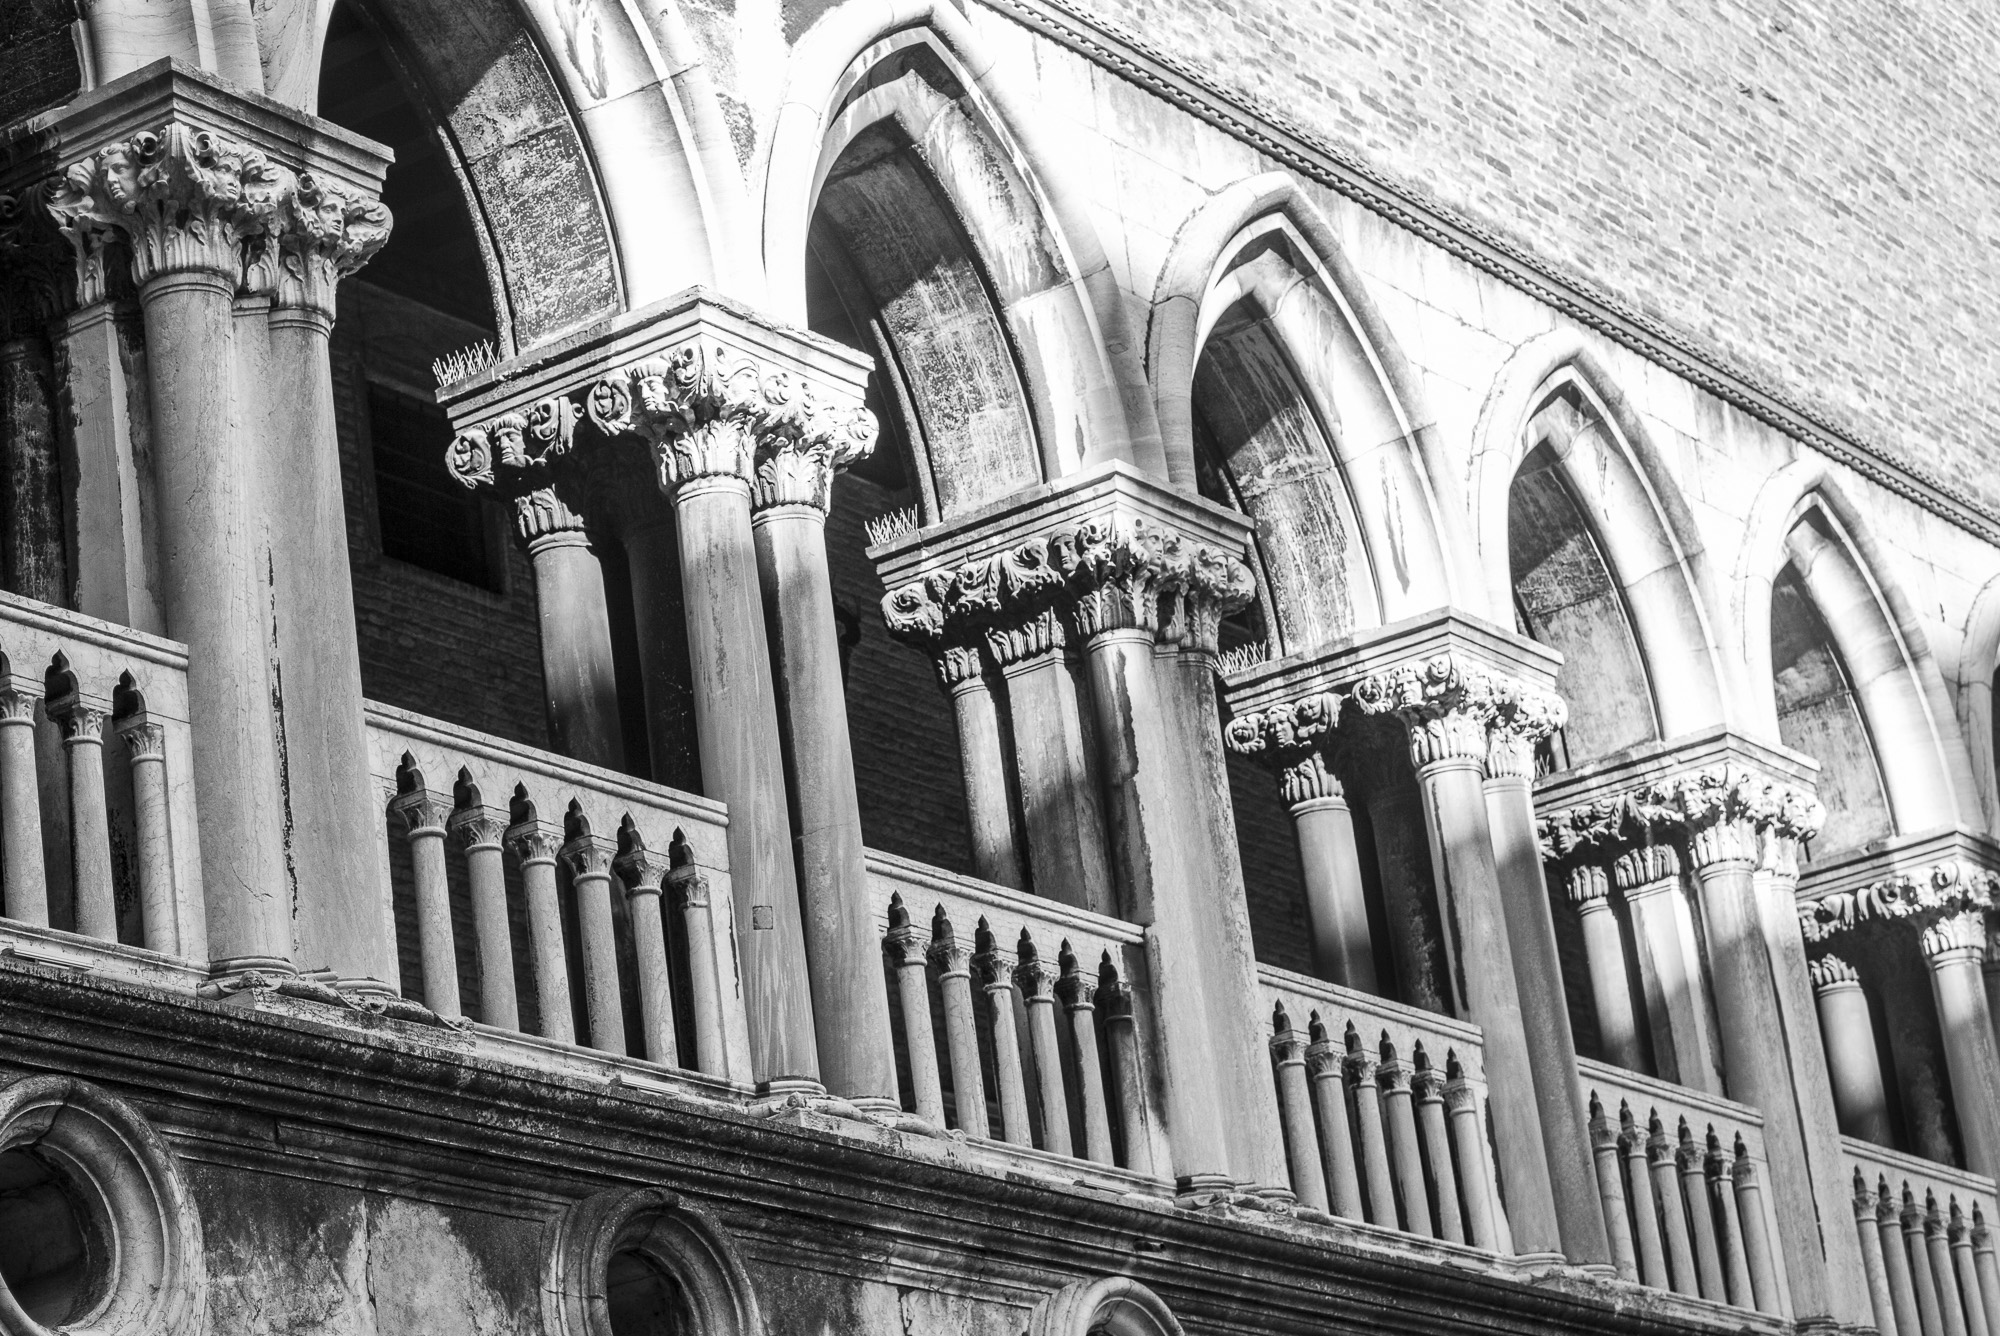 Arches at Doge's Palace